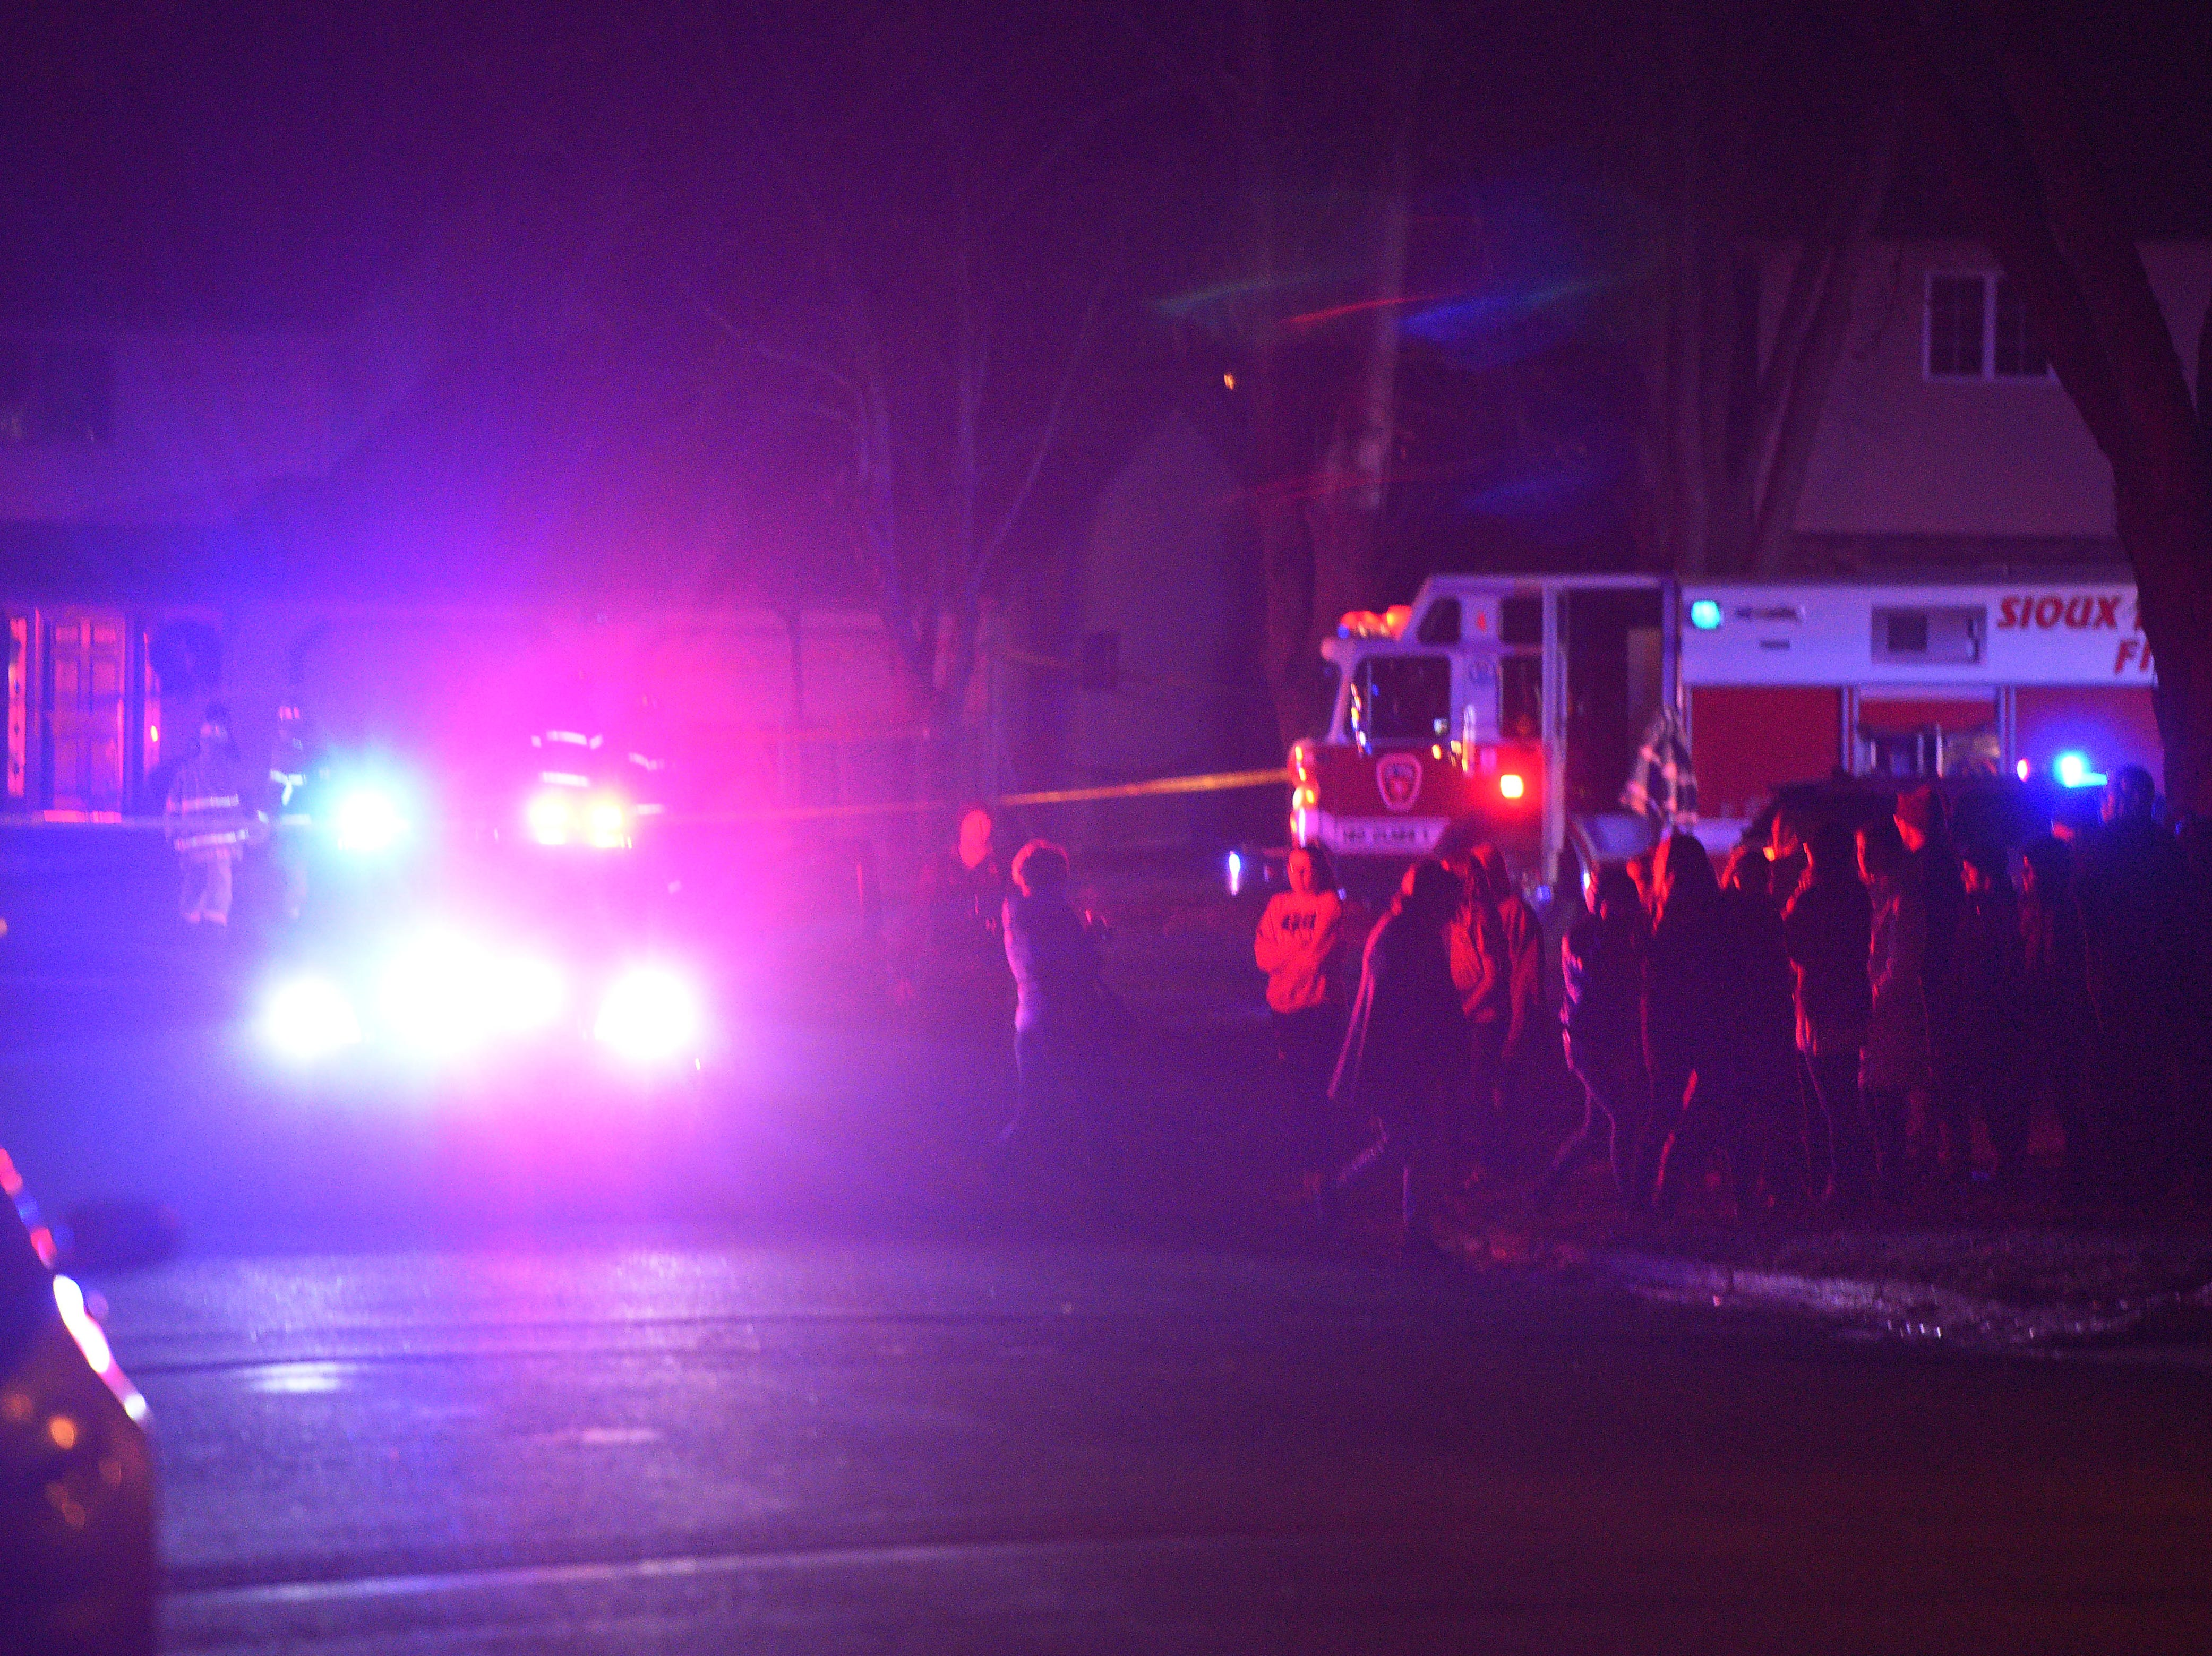 Onlookers at told to move back after firefighters begin looking for debris after a plane crashed into a home in the 4200 block of south Birchwood Avenue Tuesday, Dec. 25, in Sioux Falls.